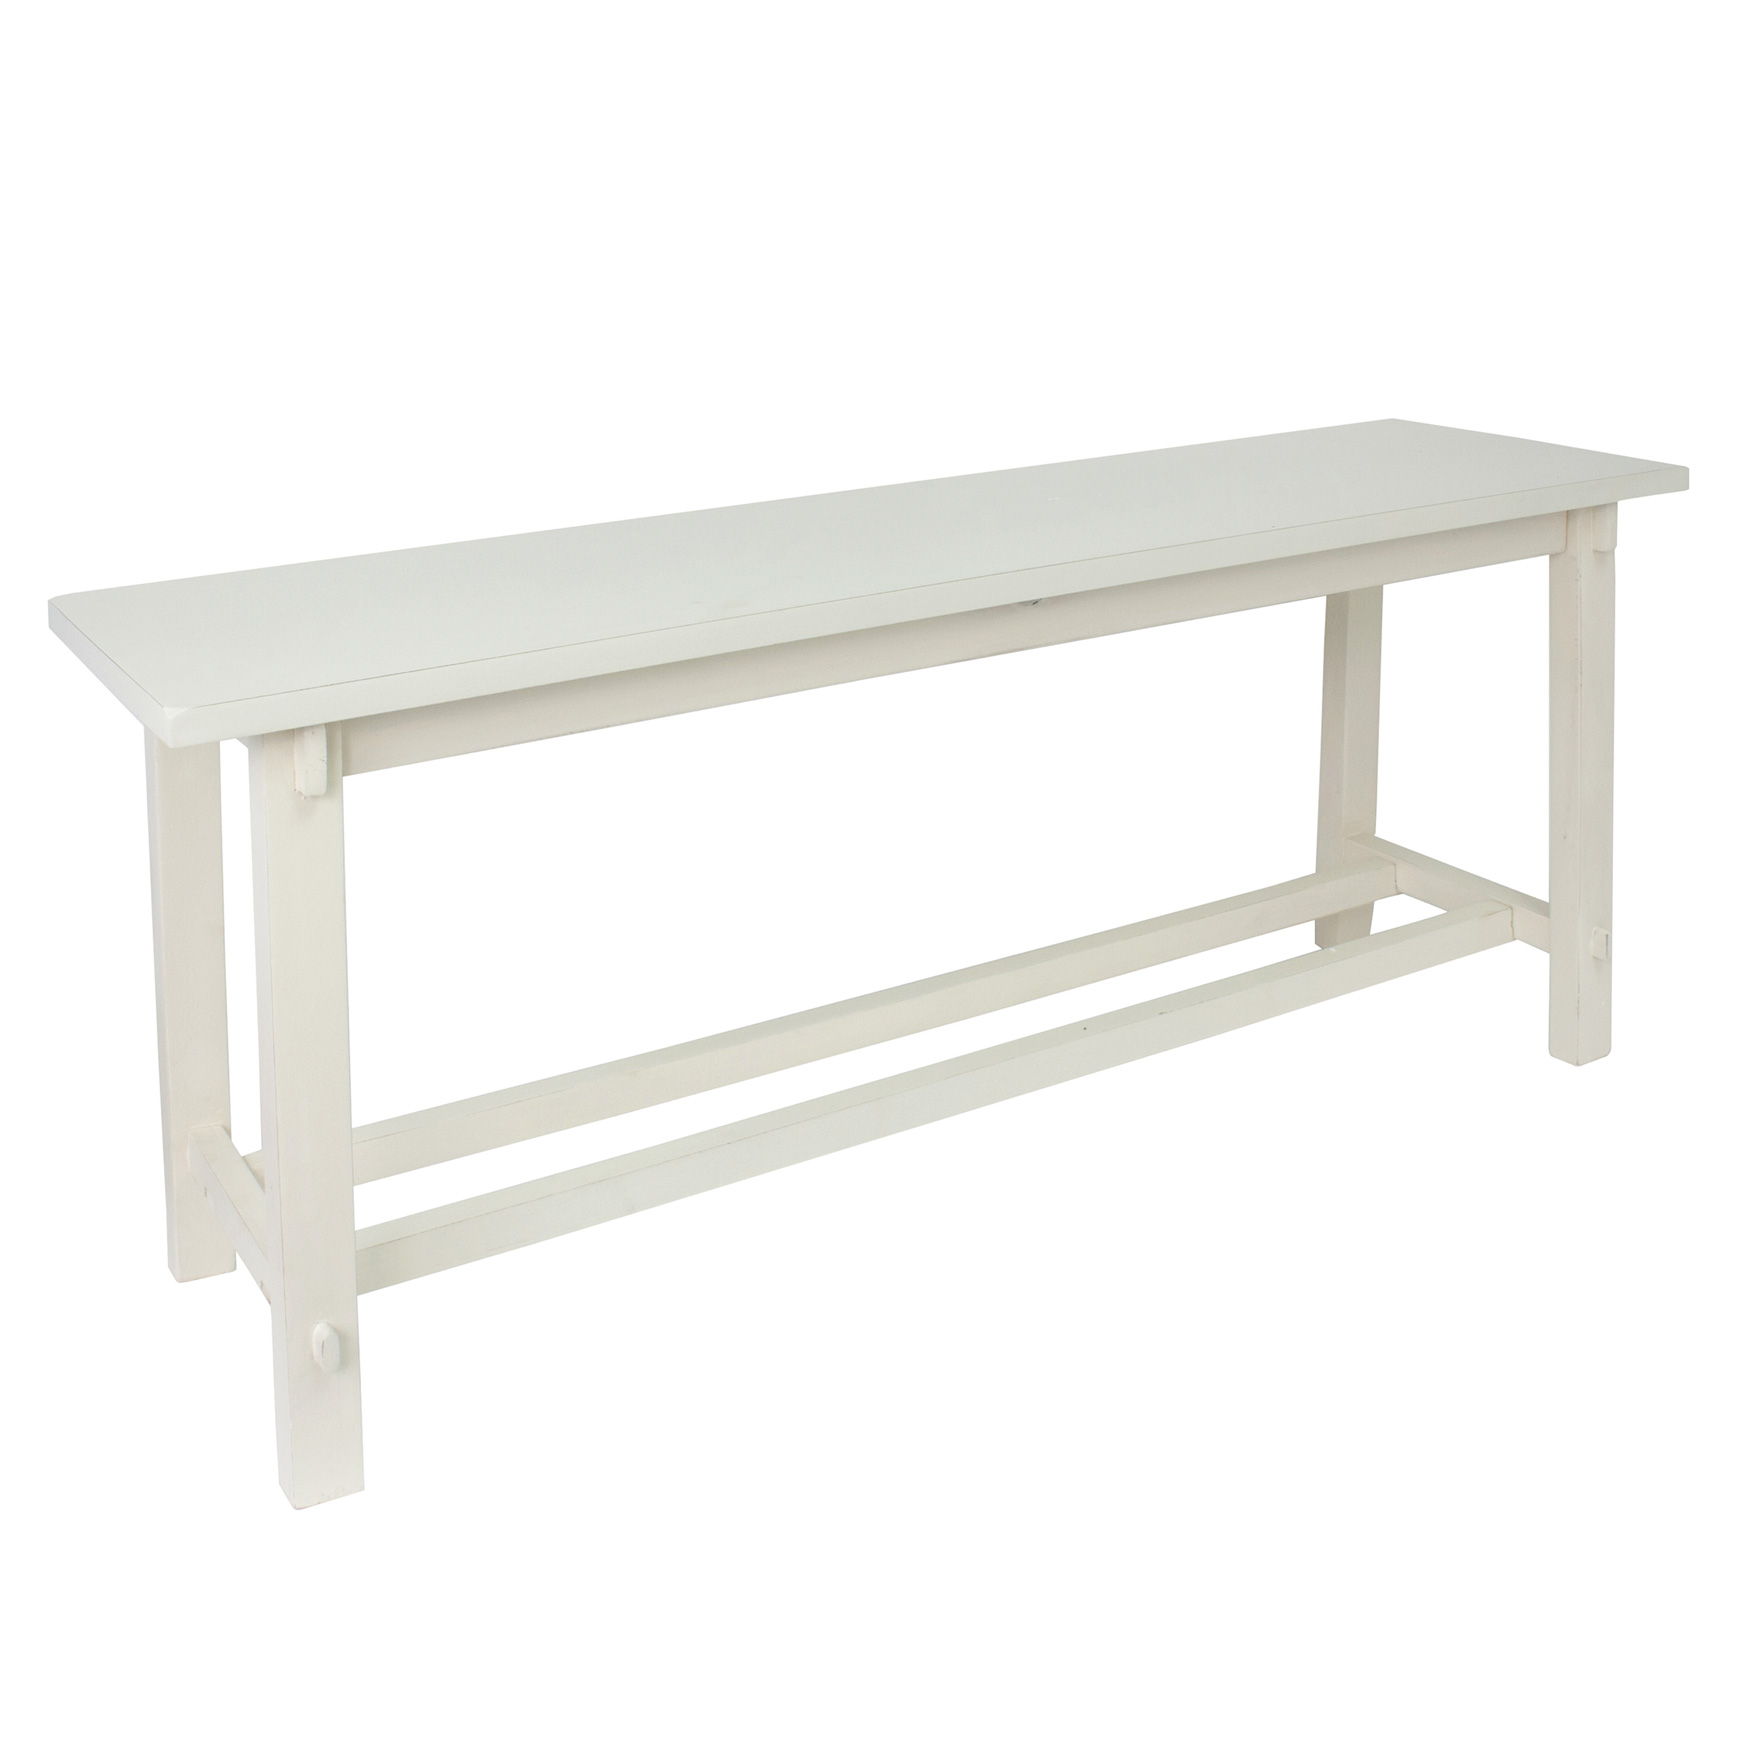 White Kyoto Bench, ANTIQUE WHITE